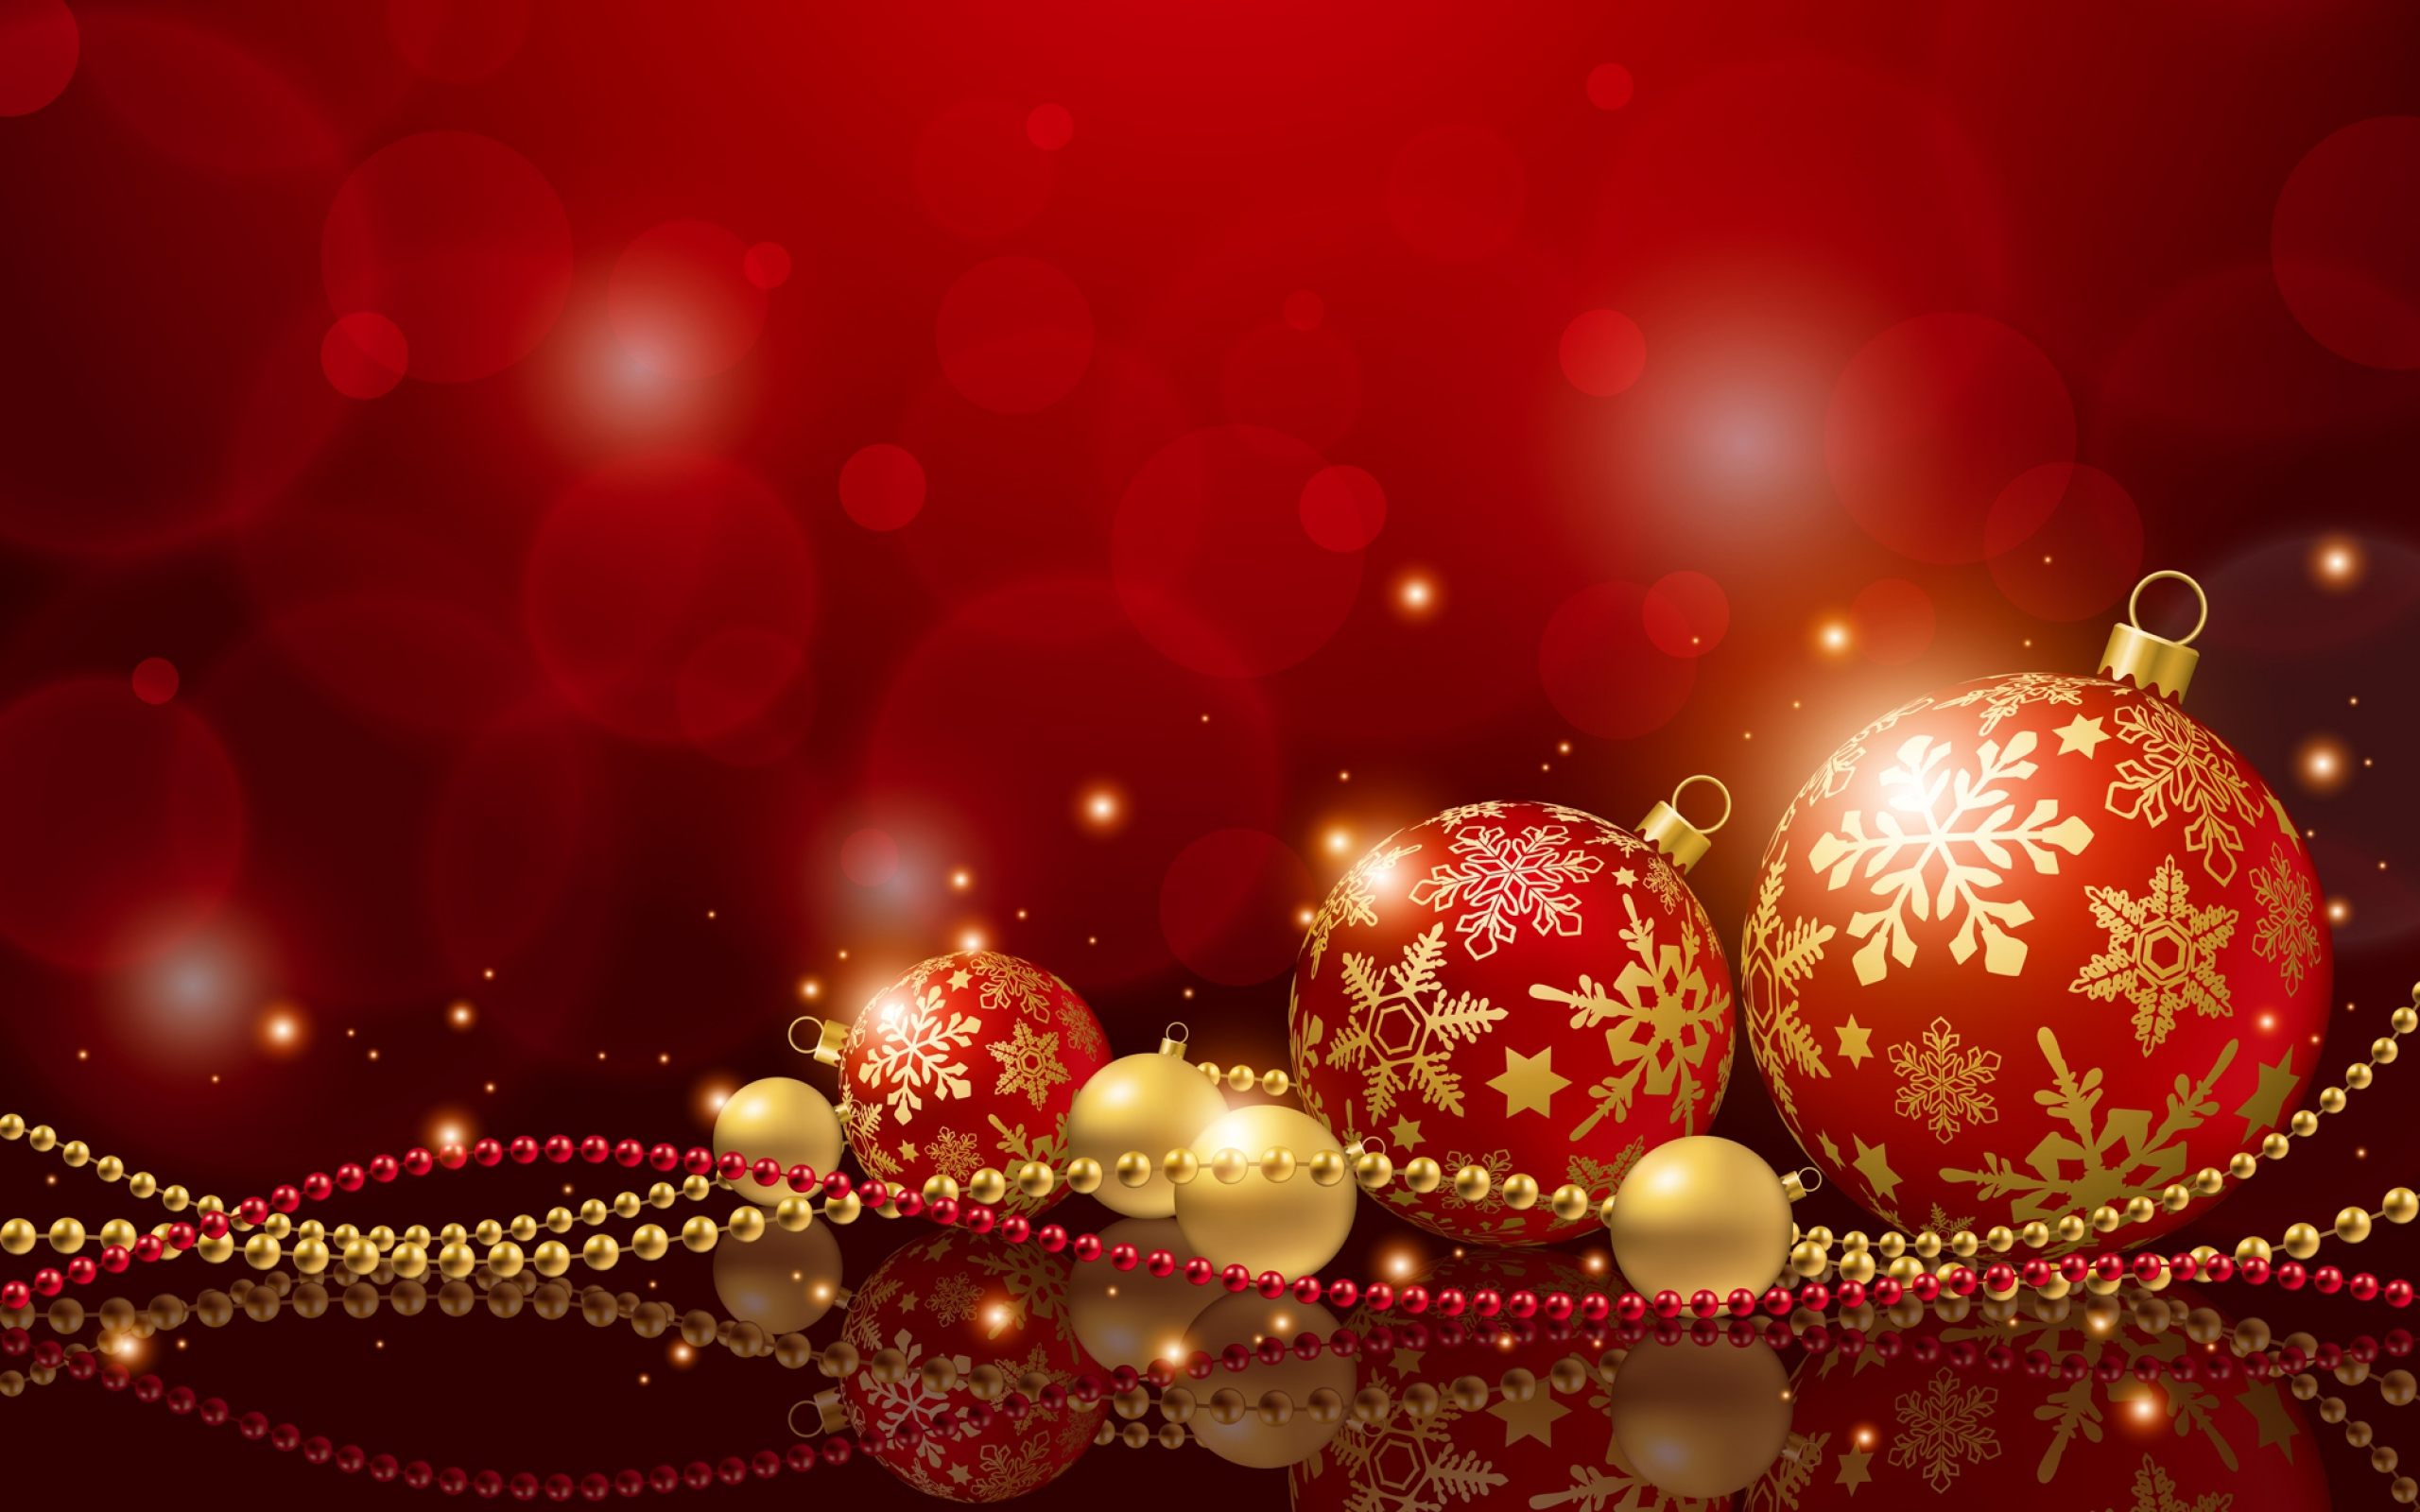 Holiday Wallpaper Hd - Red Christmas Backgrounds , HD Wallpaper & Backgrounds